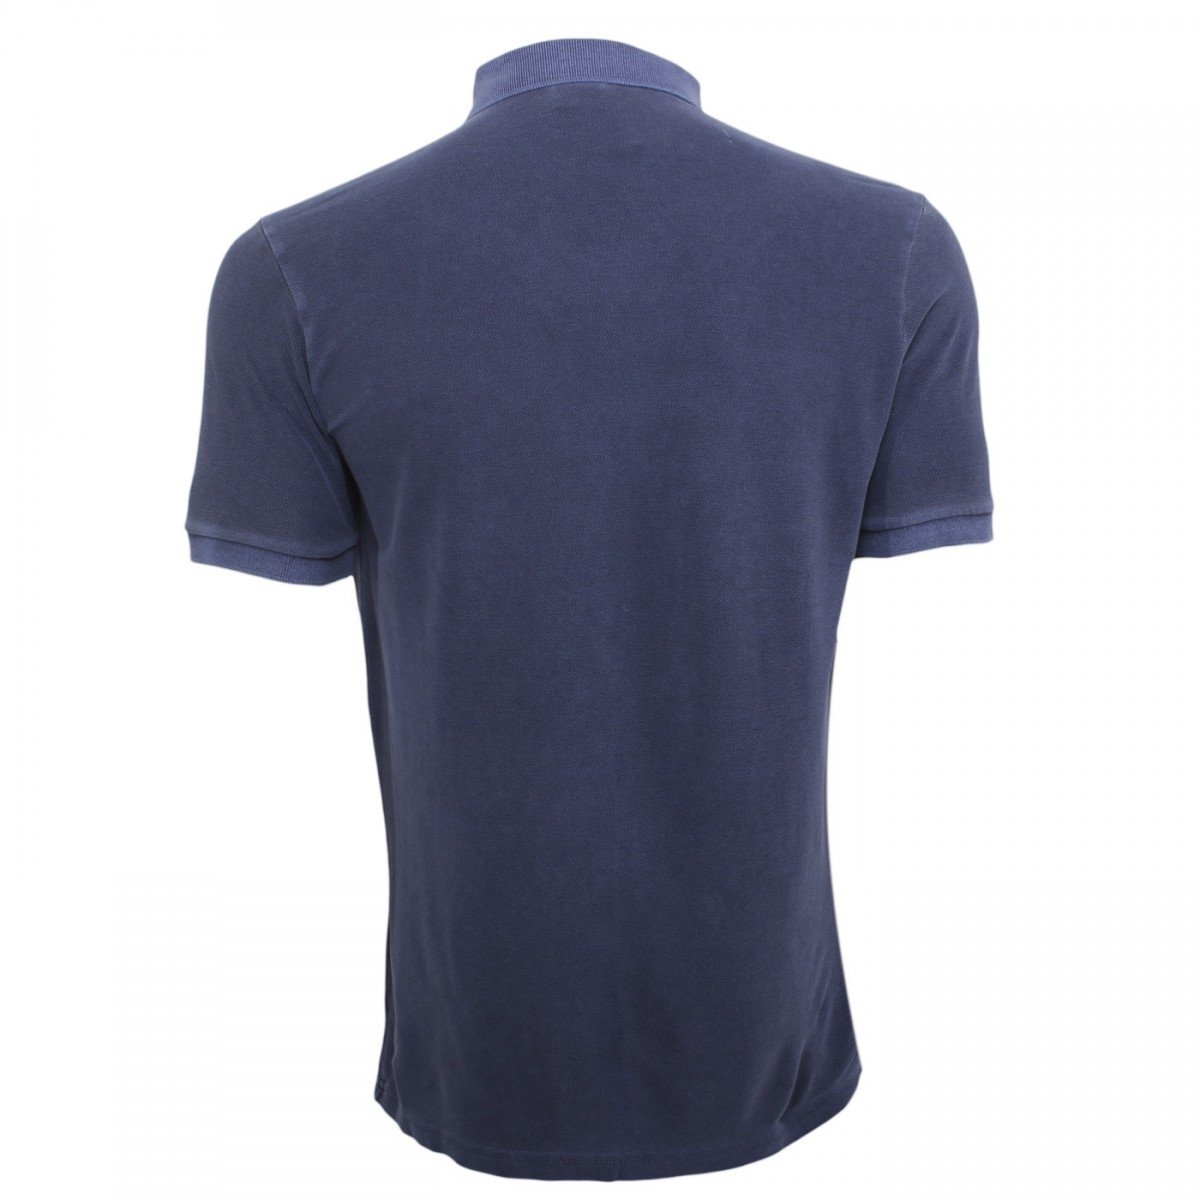 546c3160279a8 Camisa Polo Oakley Prompt  Camisa Polo Oakley Prompt